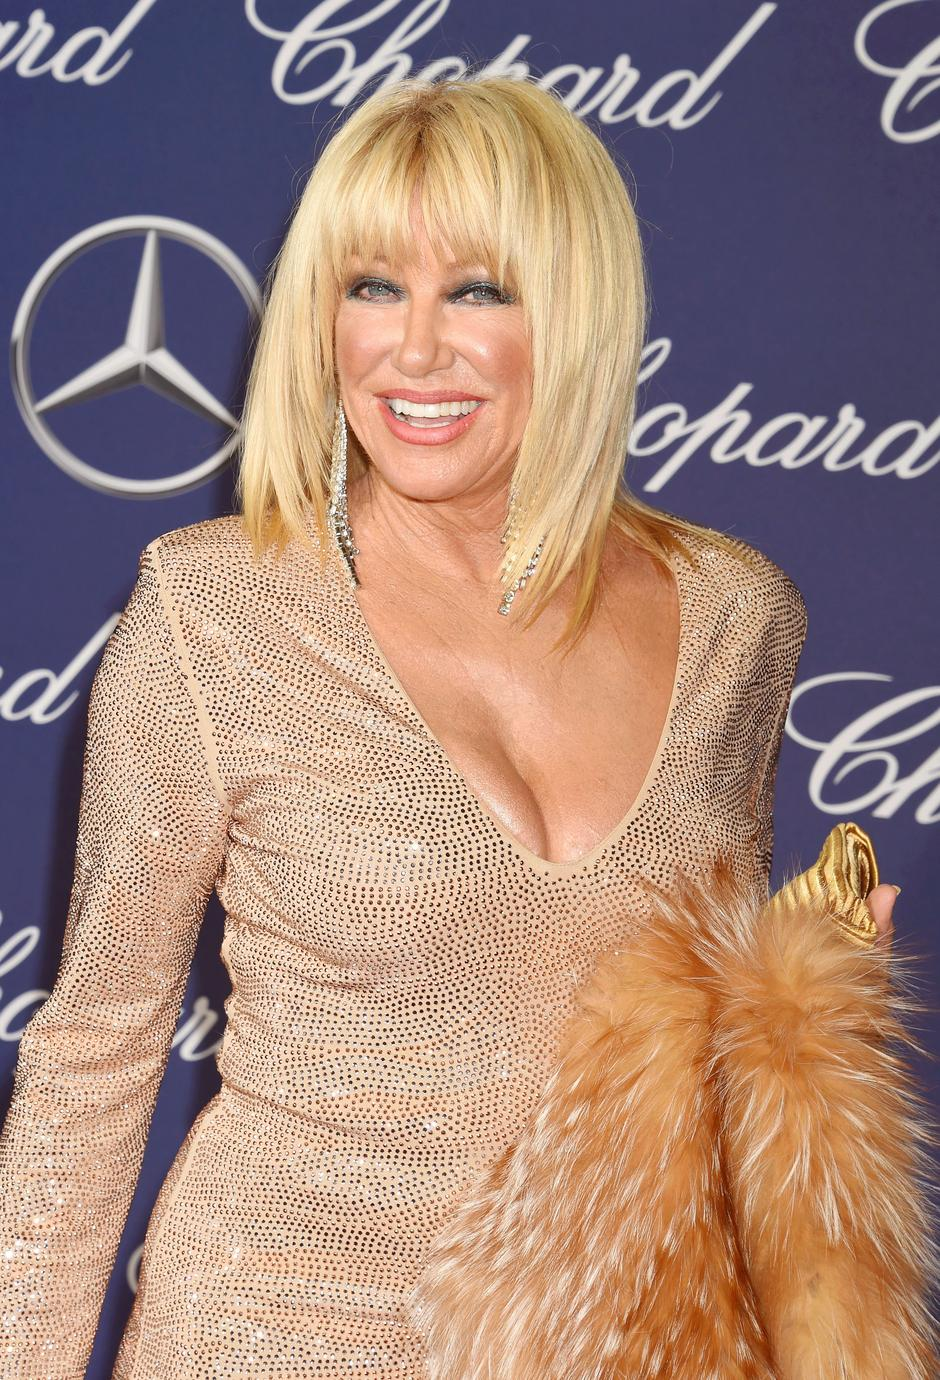 Suzanne Somersattends the 28th Annual Palm Springs International Film Festival Film Awards Gala at the Palm Springs Convention Center | Autor: Profimedia